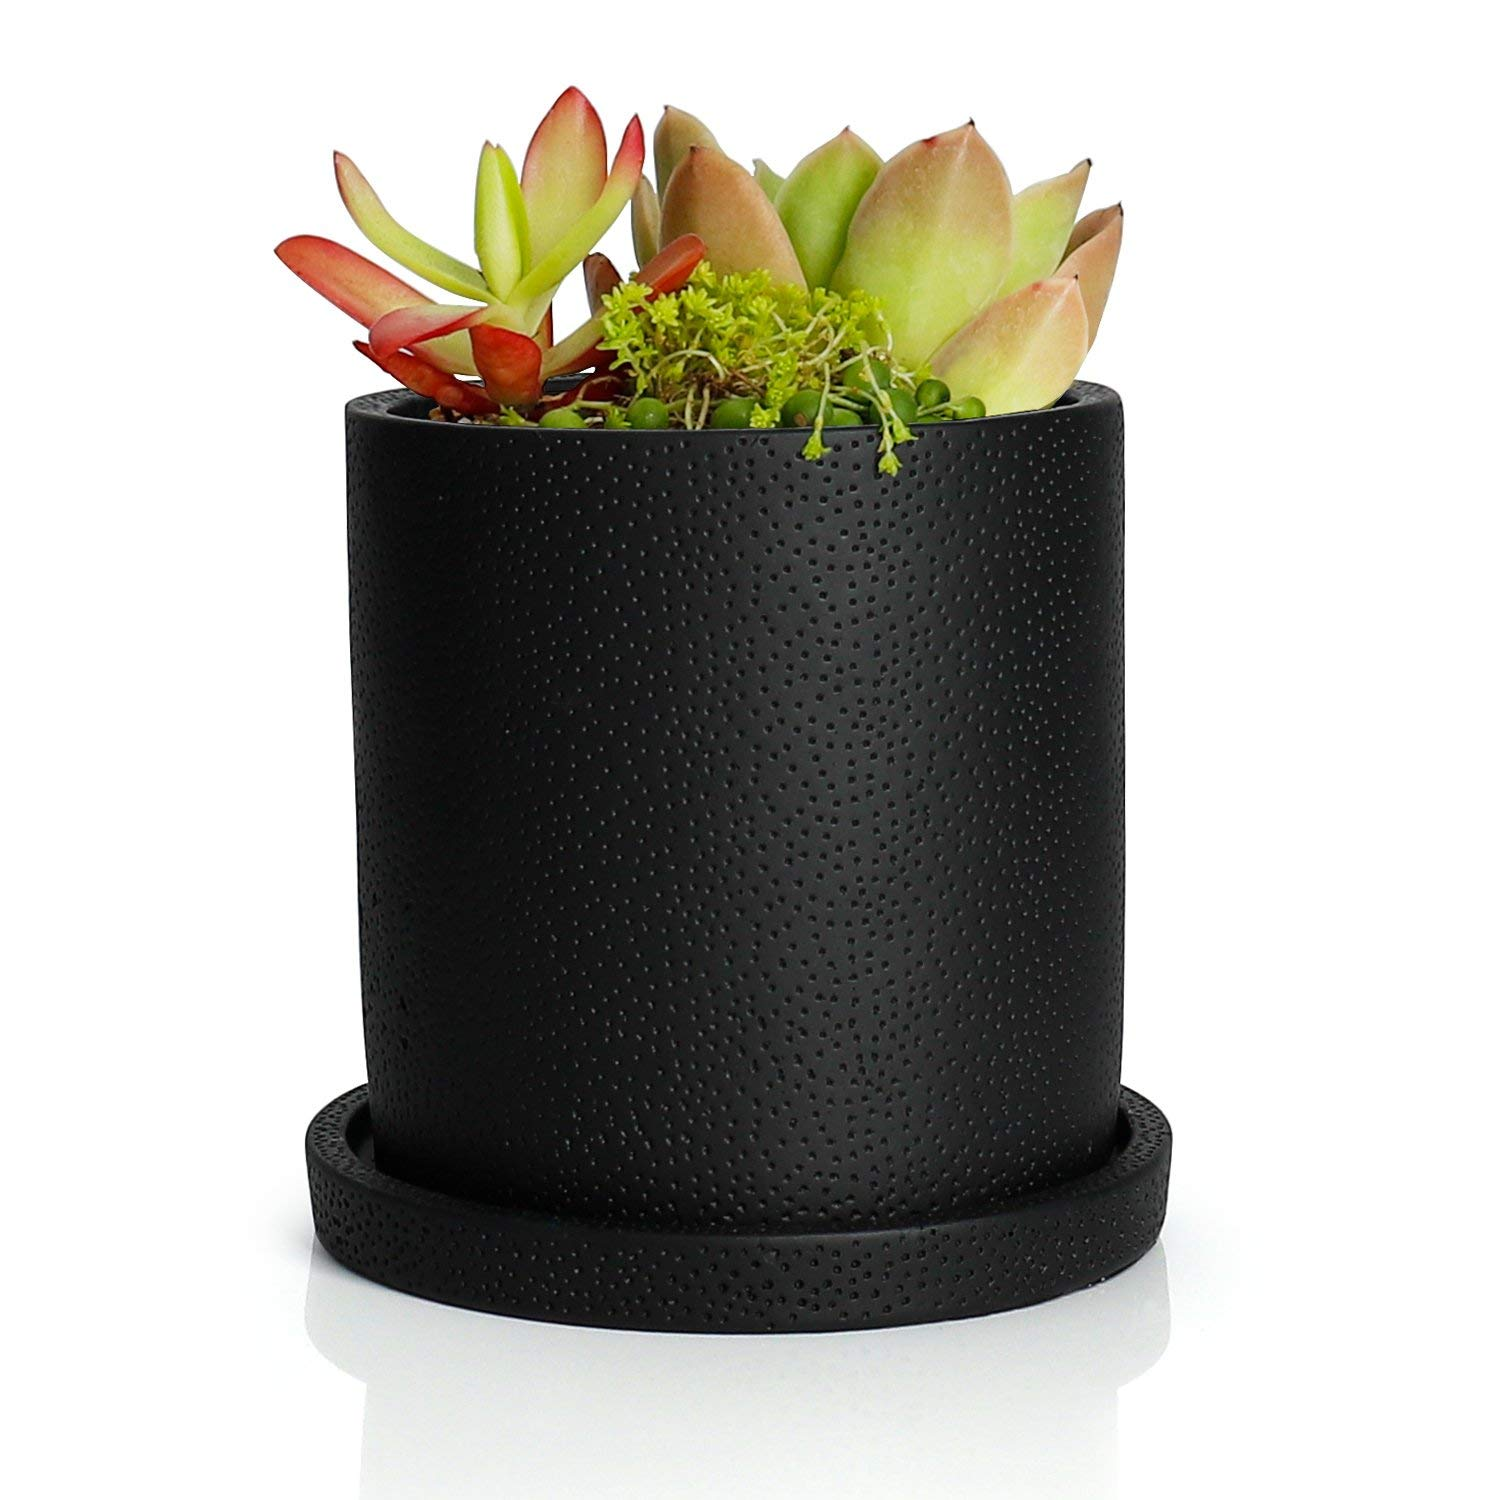 Greenaholics Succulent Plant Pots - 5.1 Inch Cement Cylinder Depth Planter with Drainage Hole and Tray, Black